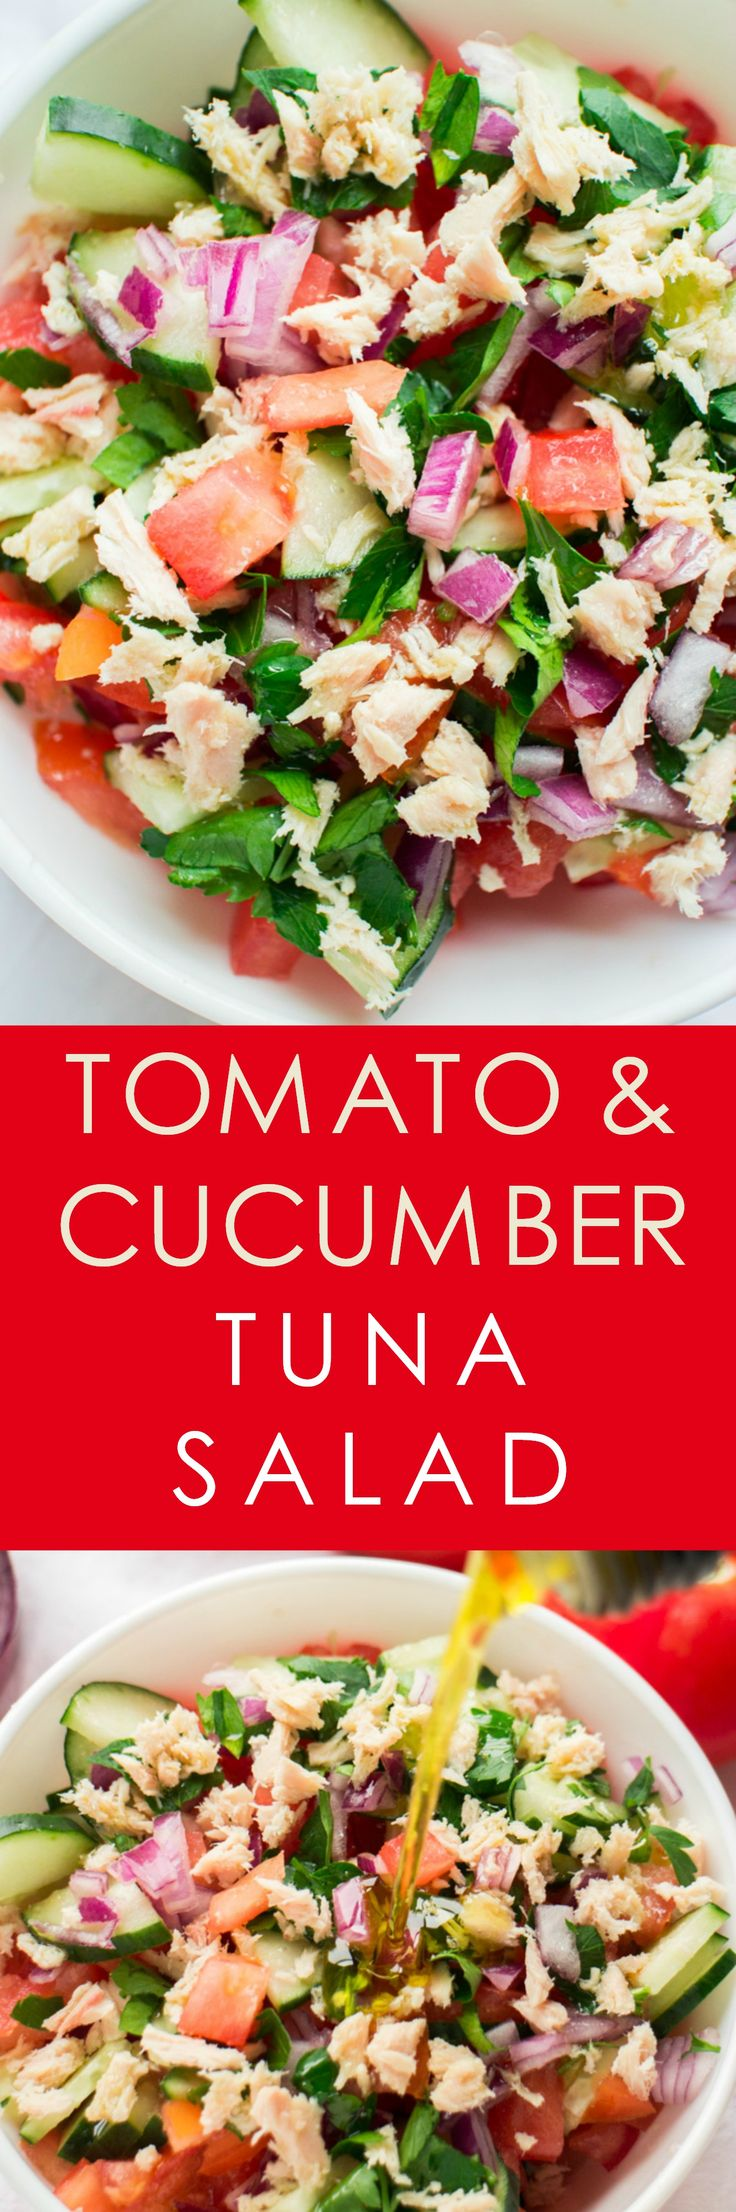 HEALTHY Tomato Cucumber Tuna Salad with olive oil dressing! This easy salad recipe is a Summer favorite! I love using fresh tomatoes, cucumber and onions from the garden! It's completely vegan with no dairy!